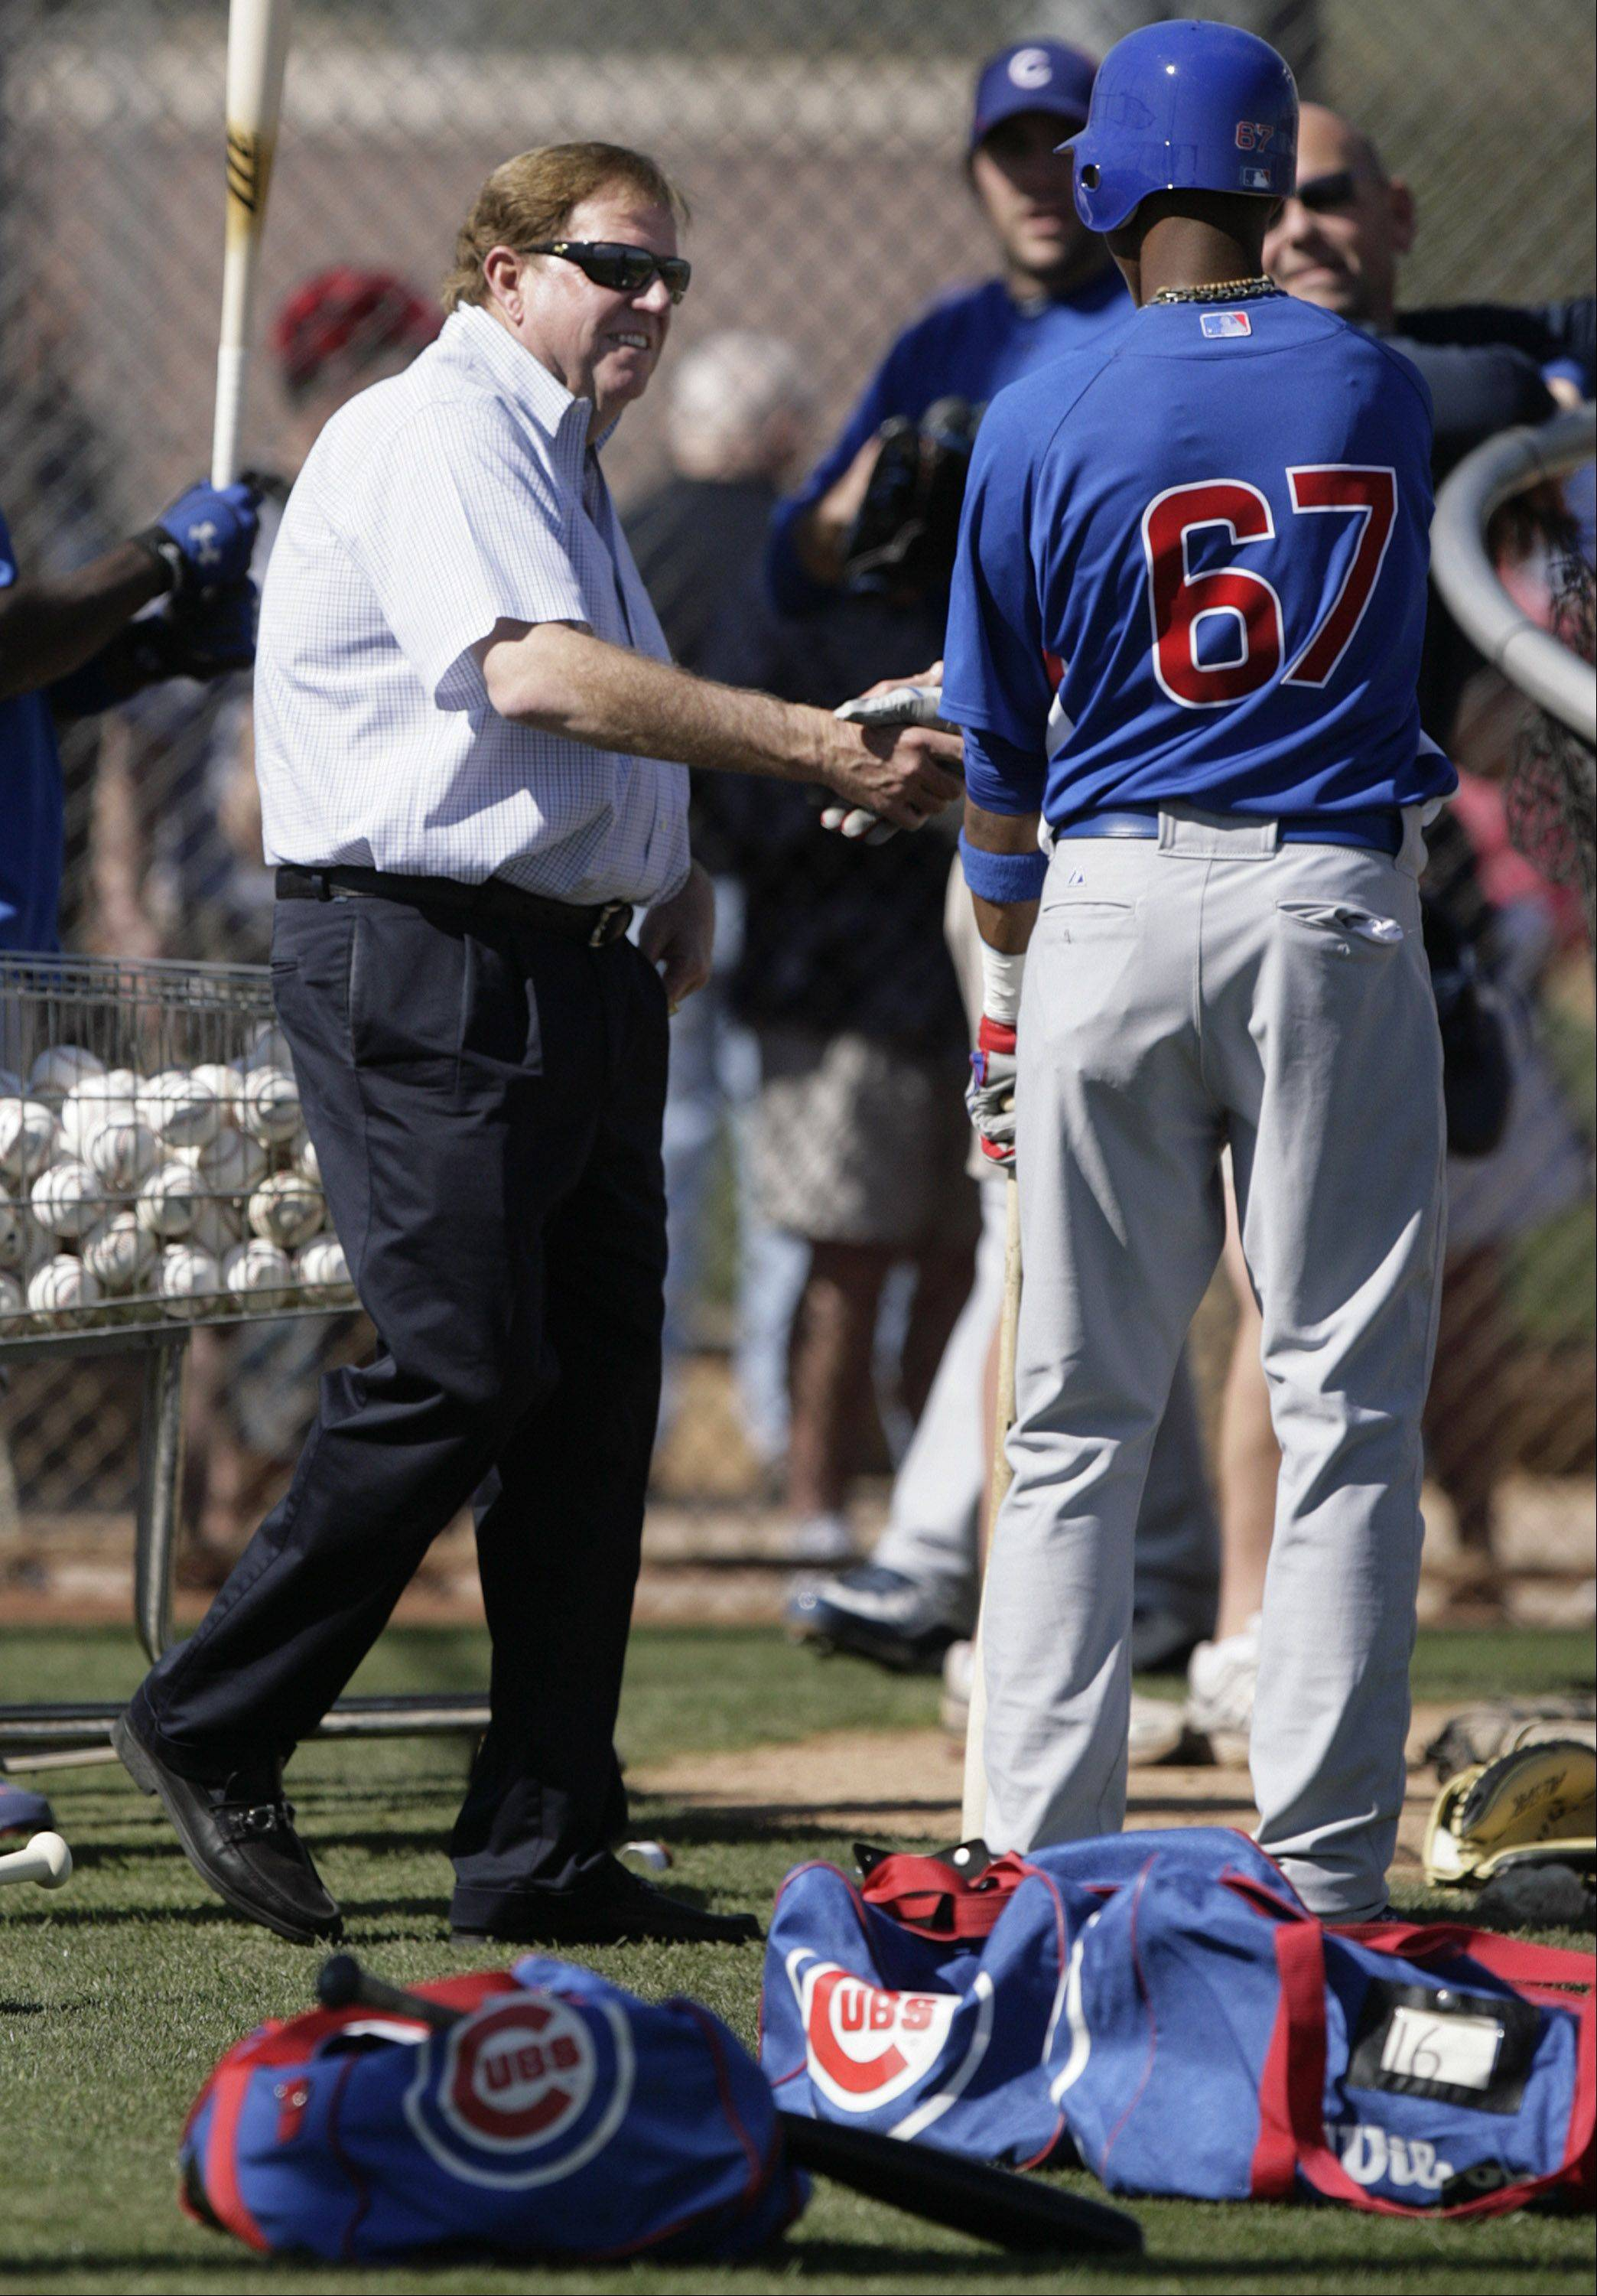 Chicago Cubs general manager Jim Hendry, left, shakes hands with infielder Starlin Castro, right, as Castro waits his turn to take batting practice at the team's spring training baseball facility Thursday, Feb. 25, 2010, in Mesa, Ariz.